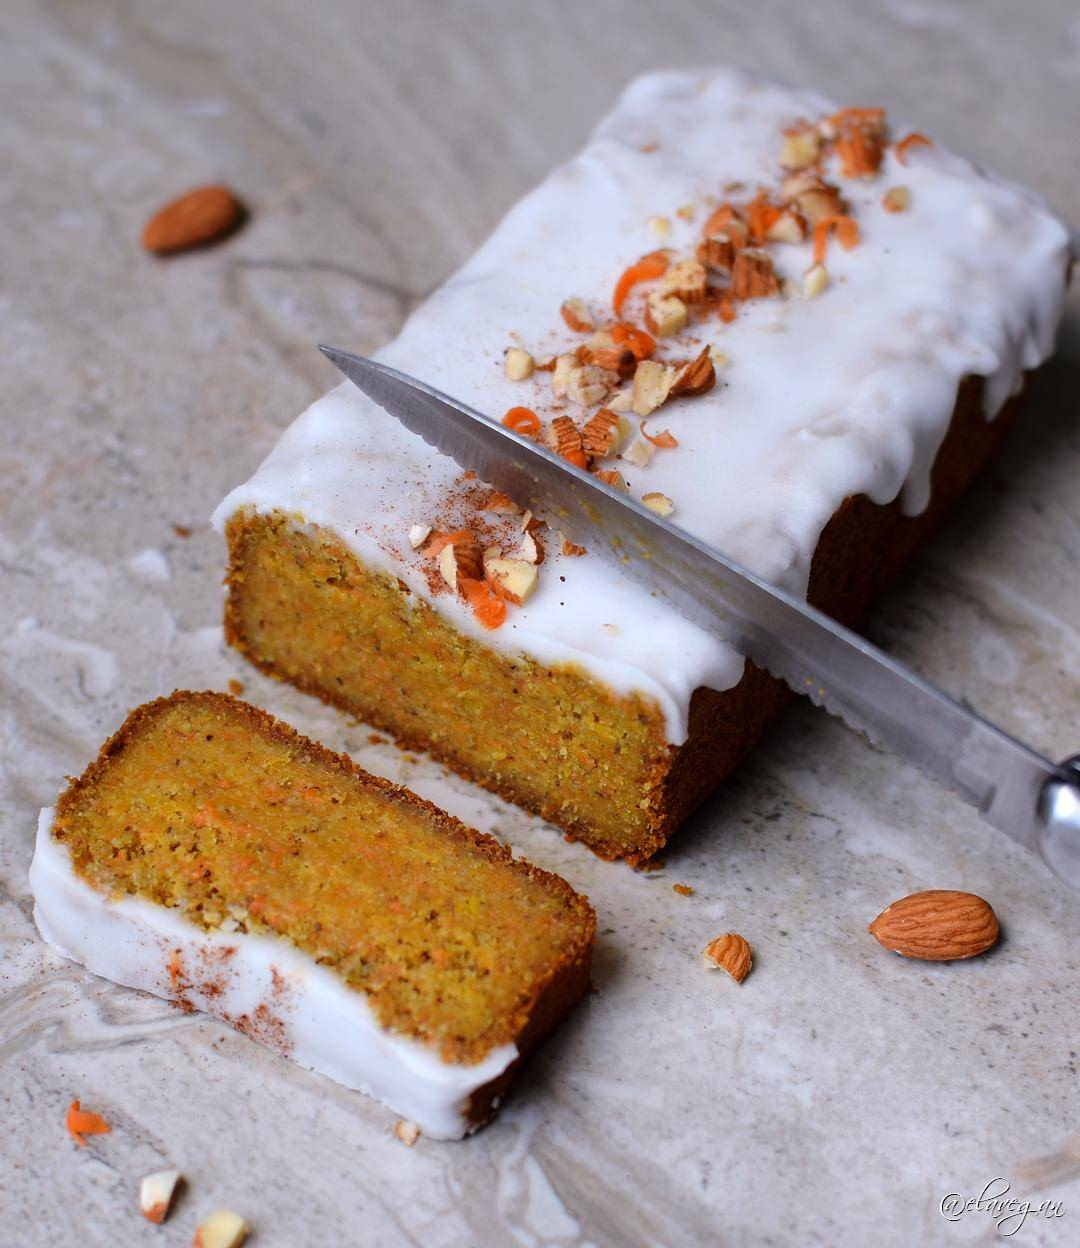 Vegan Sugar Free Carrot Cake